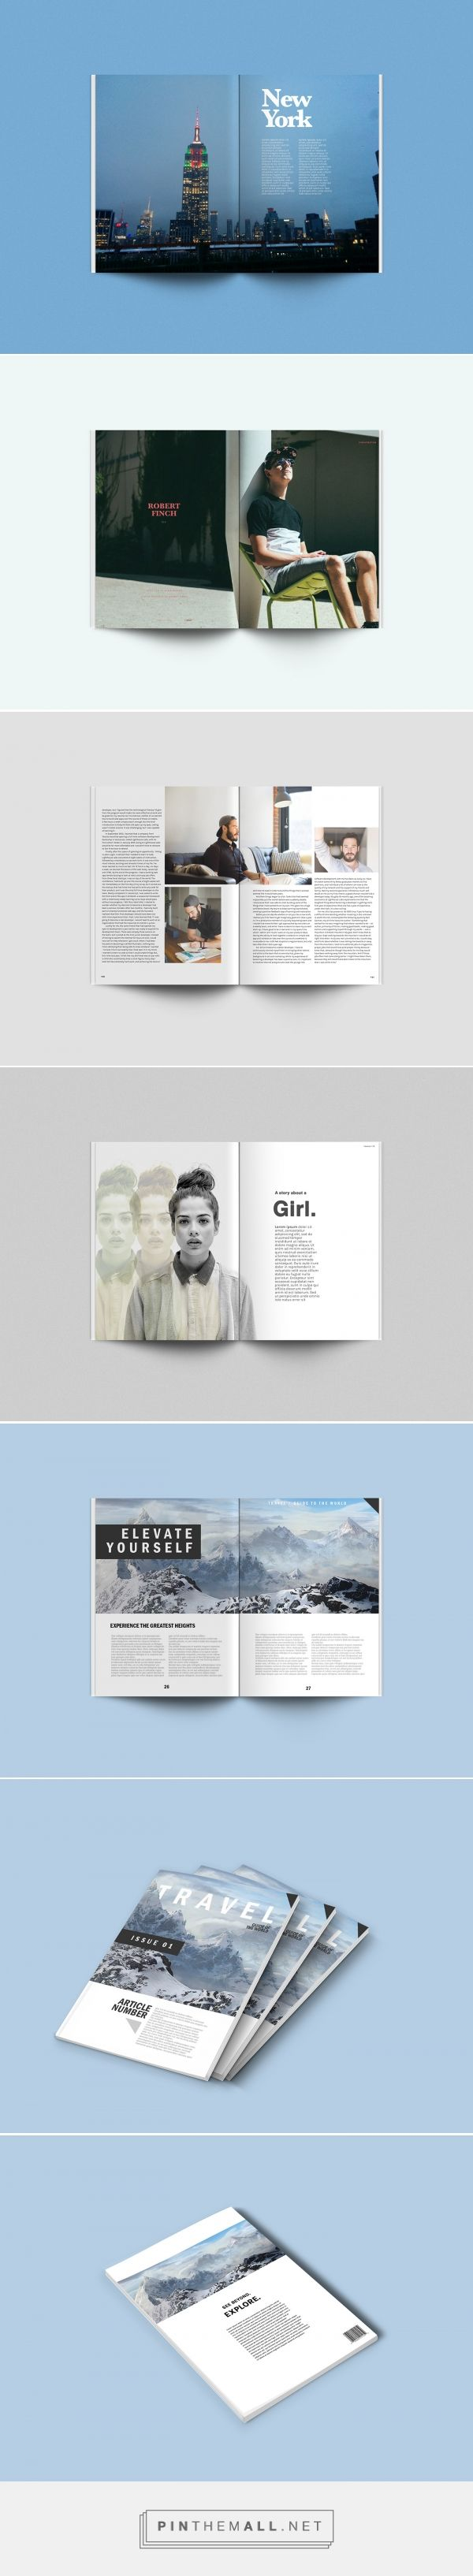 242 best mockup images on Pinterest | Posters, Altered book art and ...